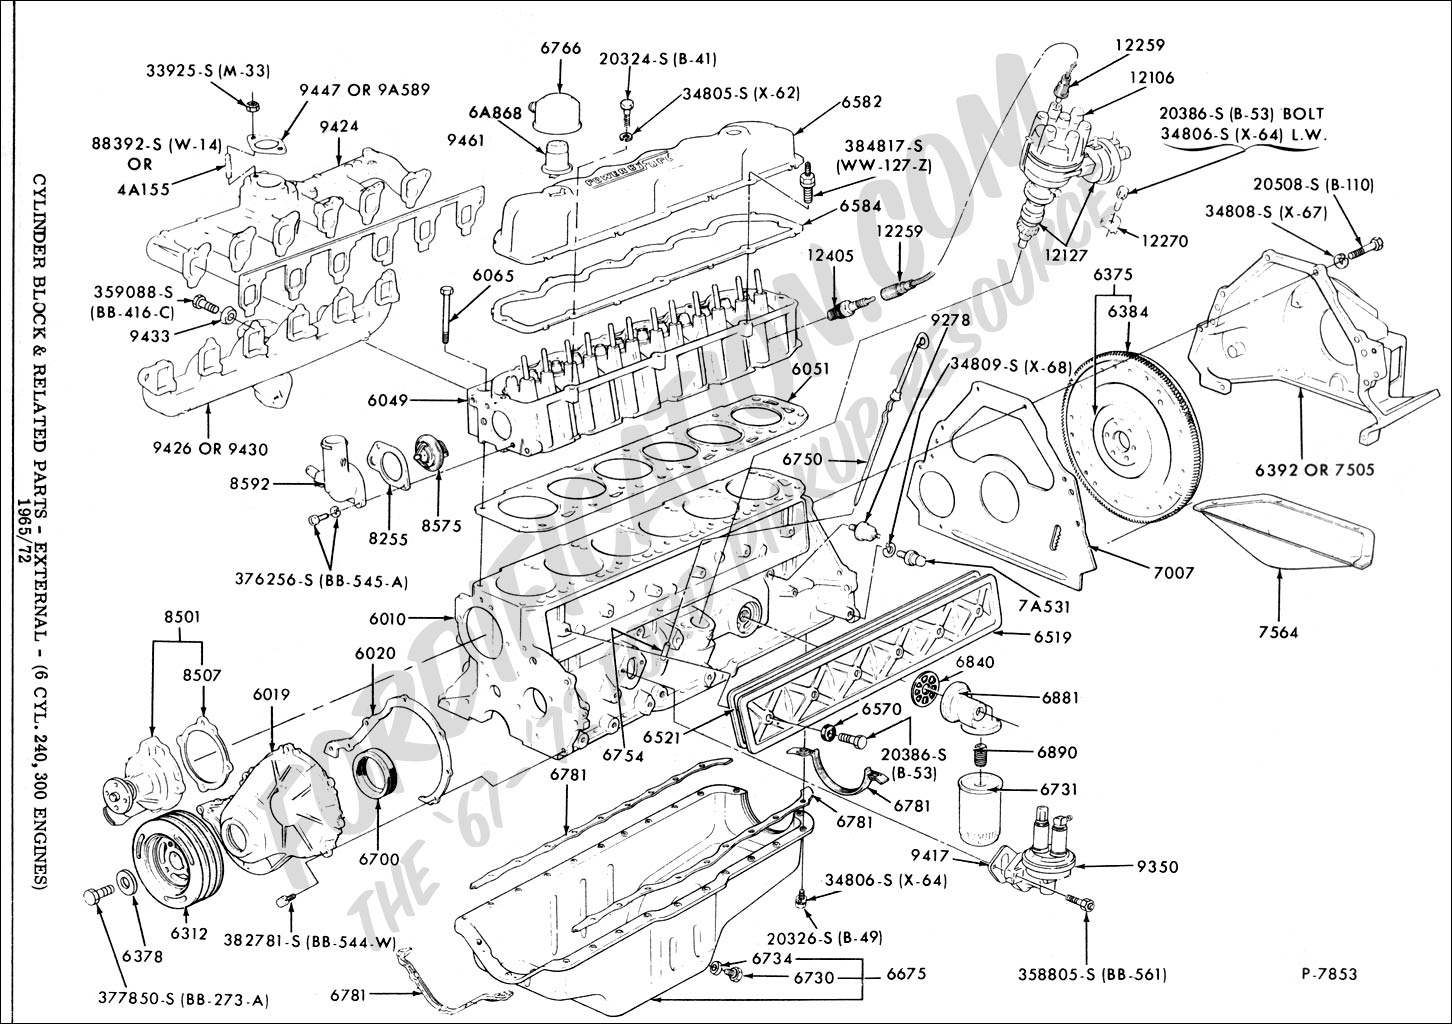 Schematics e on ford f800 wiring schematic